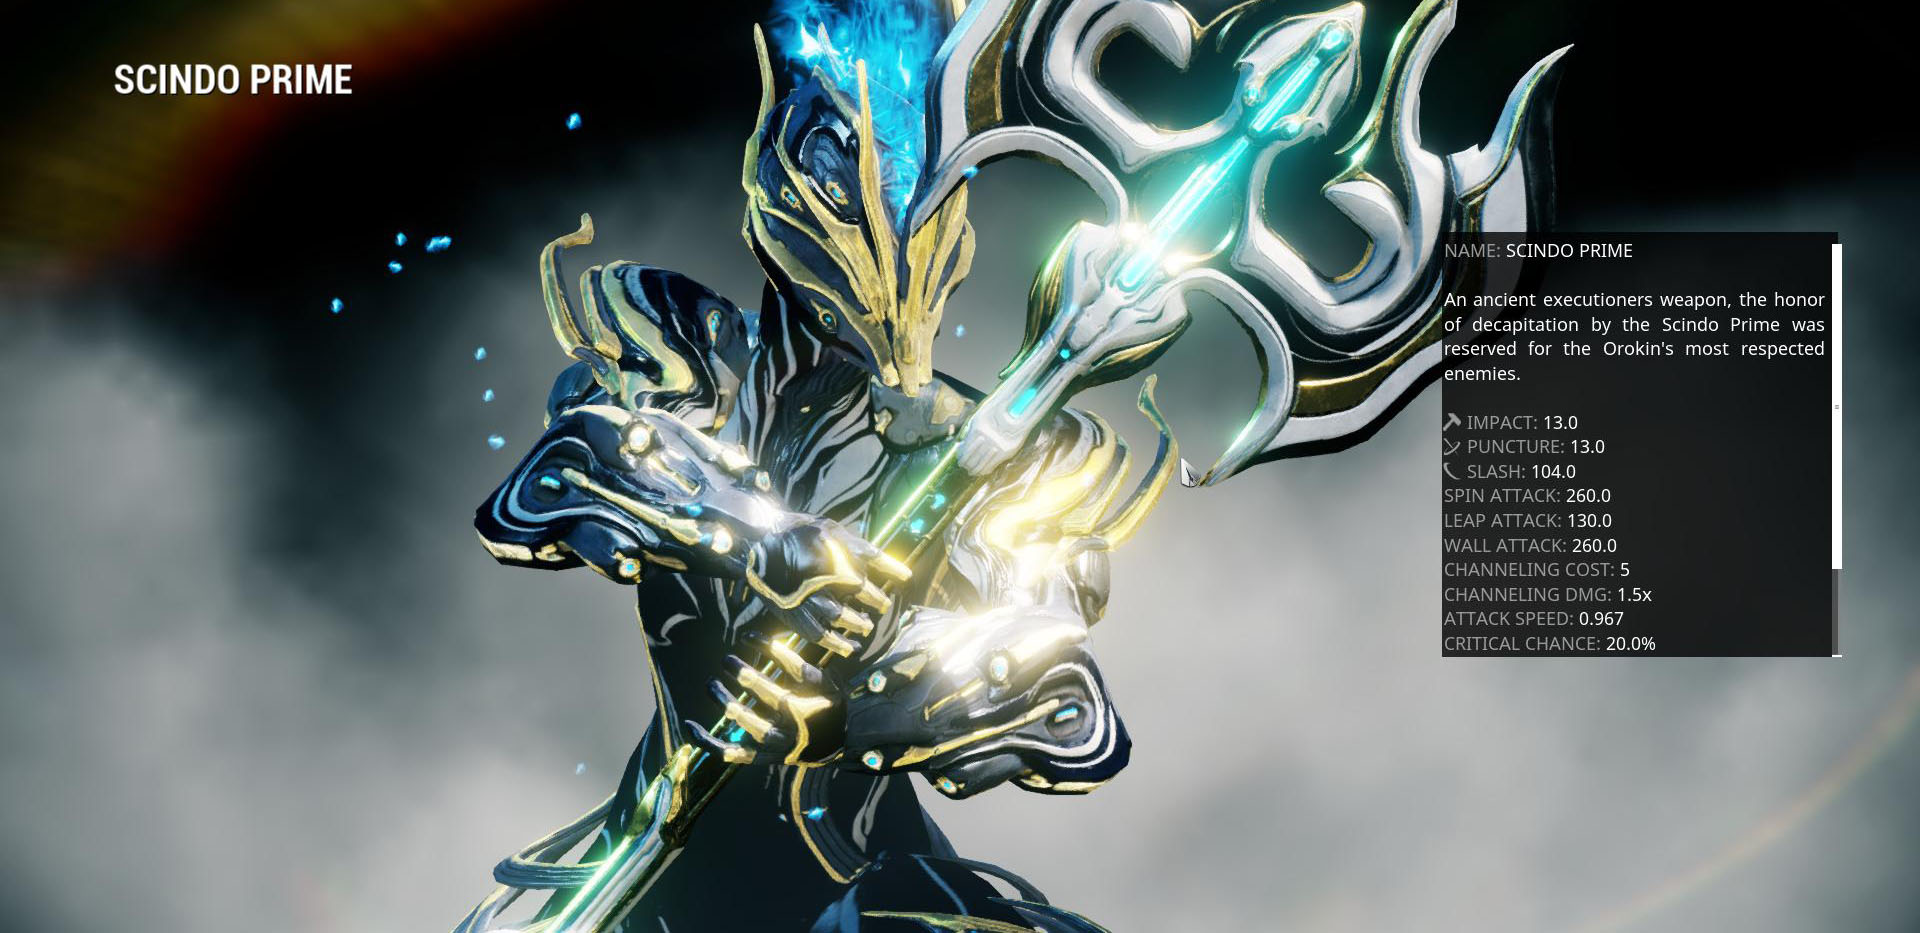 The Scindo Prime. The hardest hitting Melee weapon in the game.